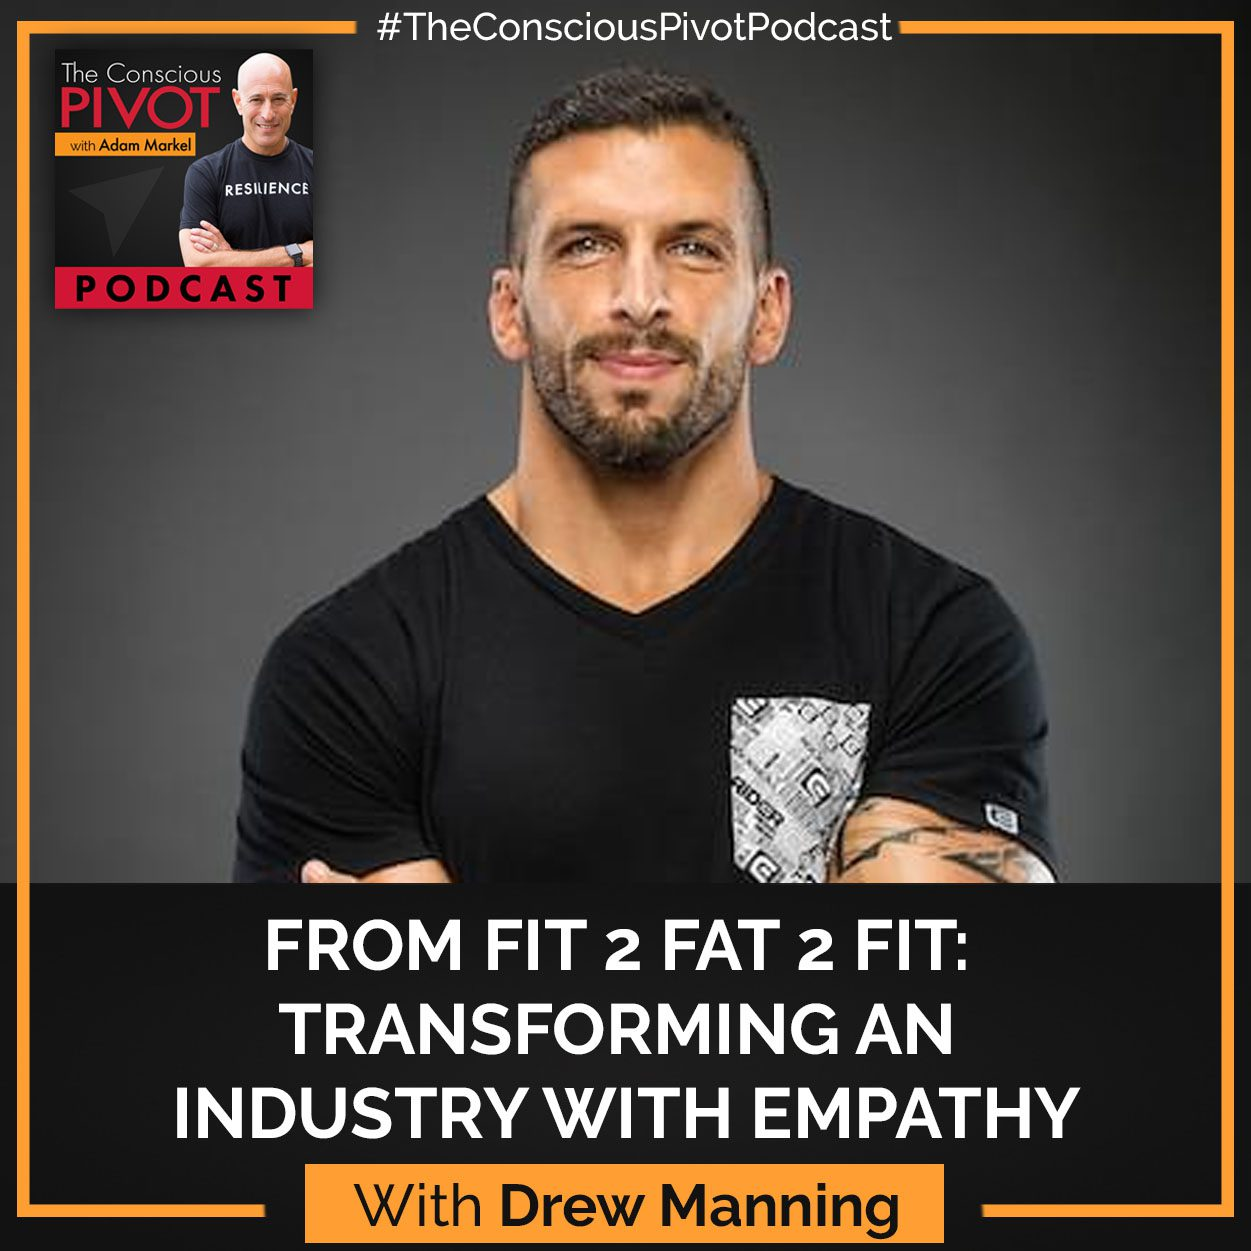 From Fit 2 Fat 2 Fit: Transforming An Industry With Empathy with Drew Manning